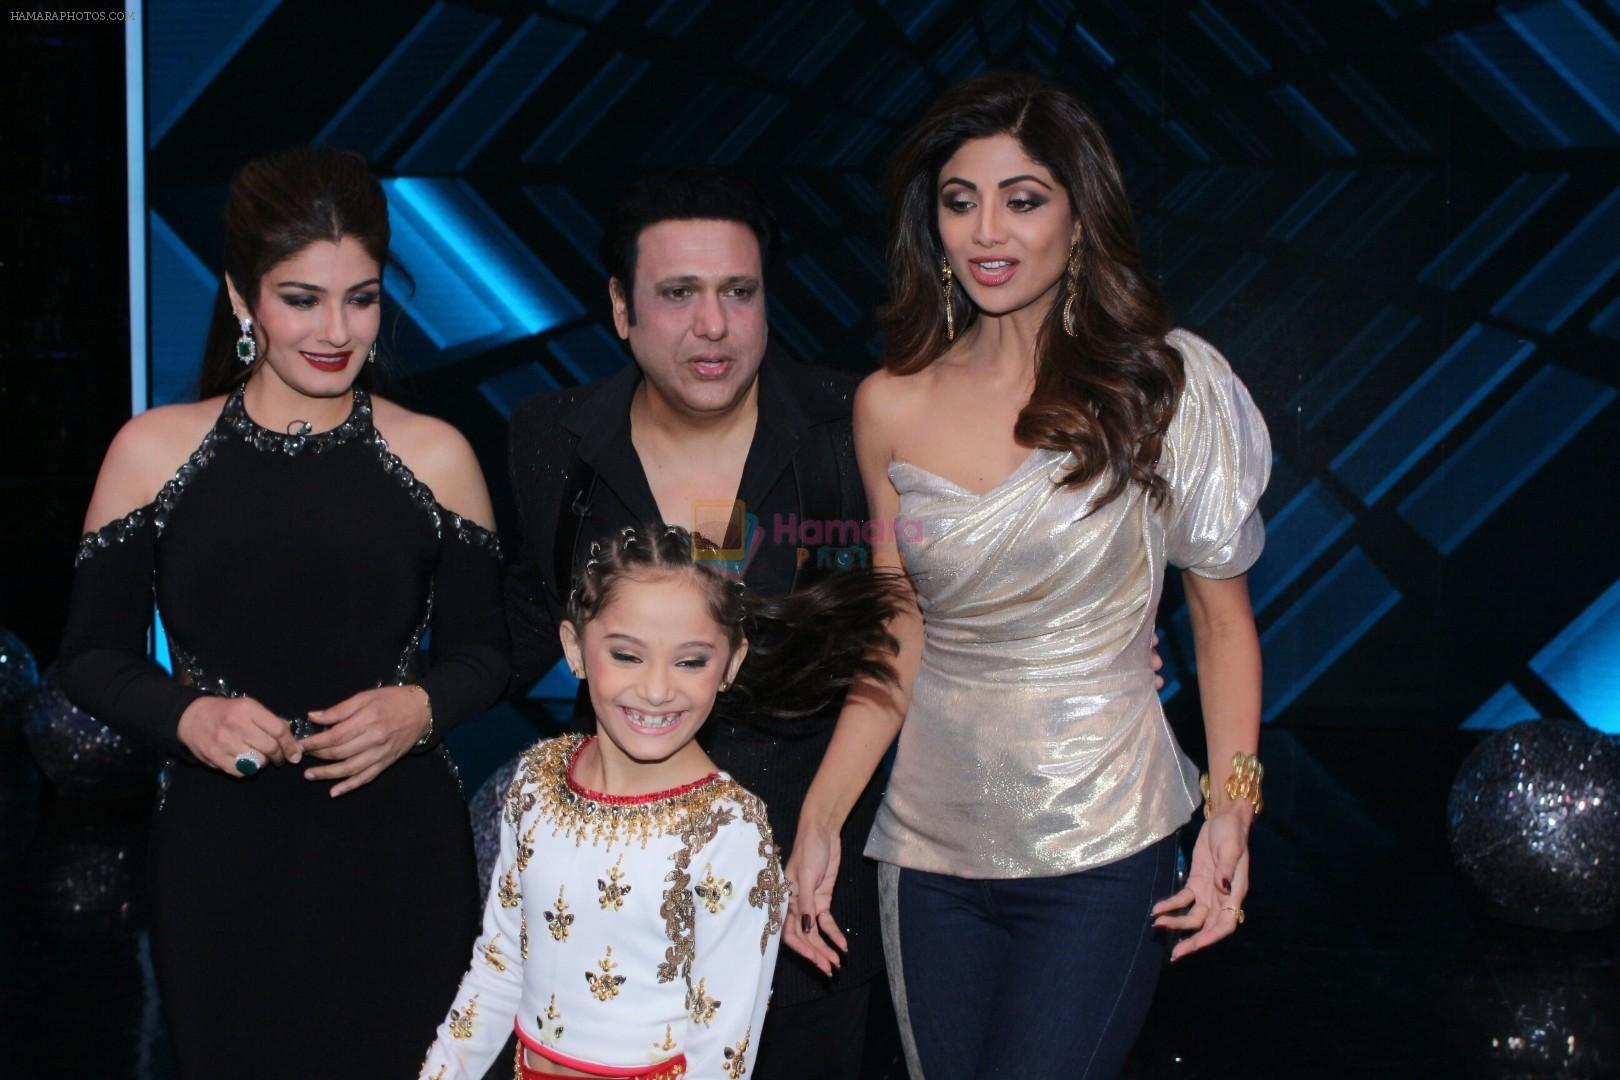 Govinda raveena tandon shilpa shetty on the sets of super dancer govinda raveena tandon shilpa shetty on the sets of super dancer chapter 2 on 4th dec 2017 altavistaventures Choice Image